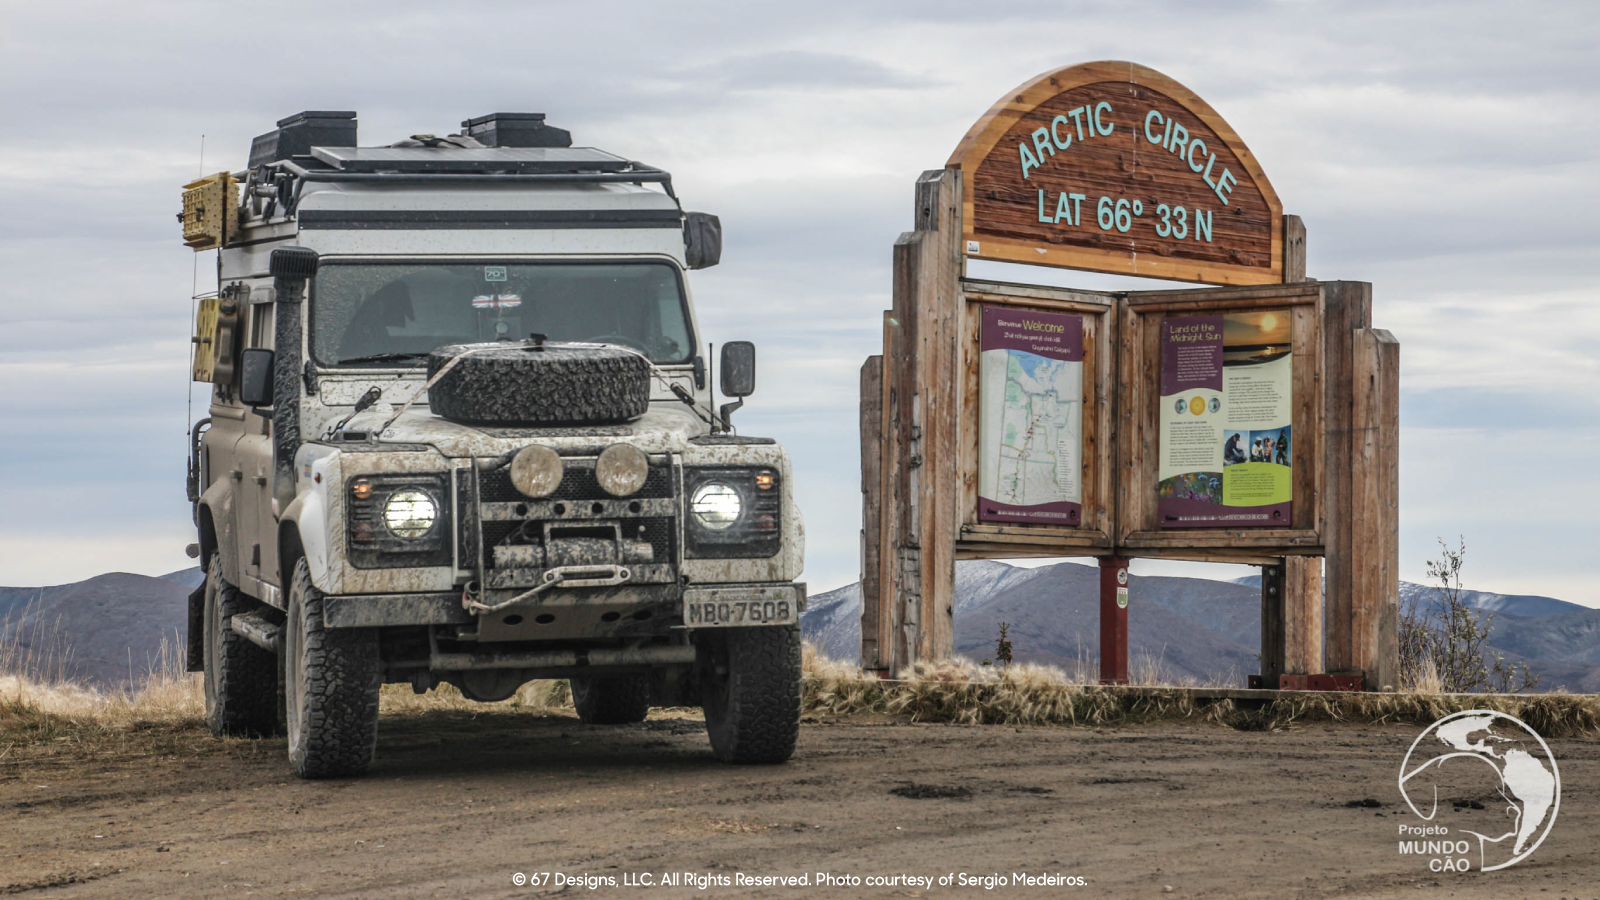 Land Rover in Arctic Circle